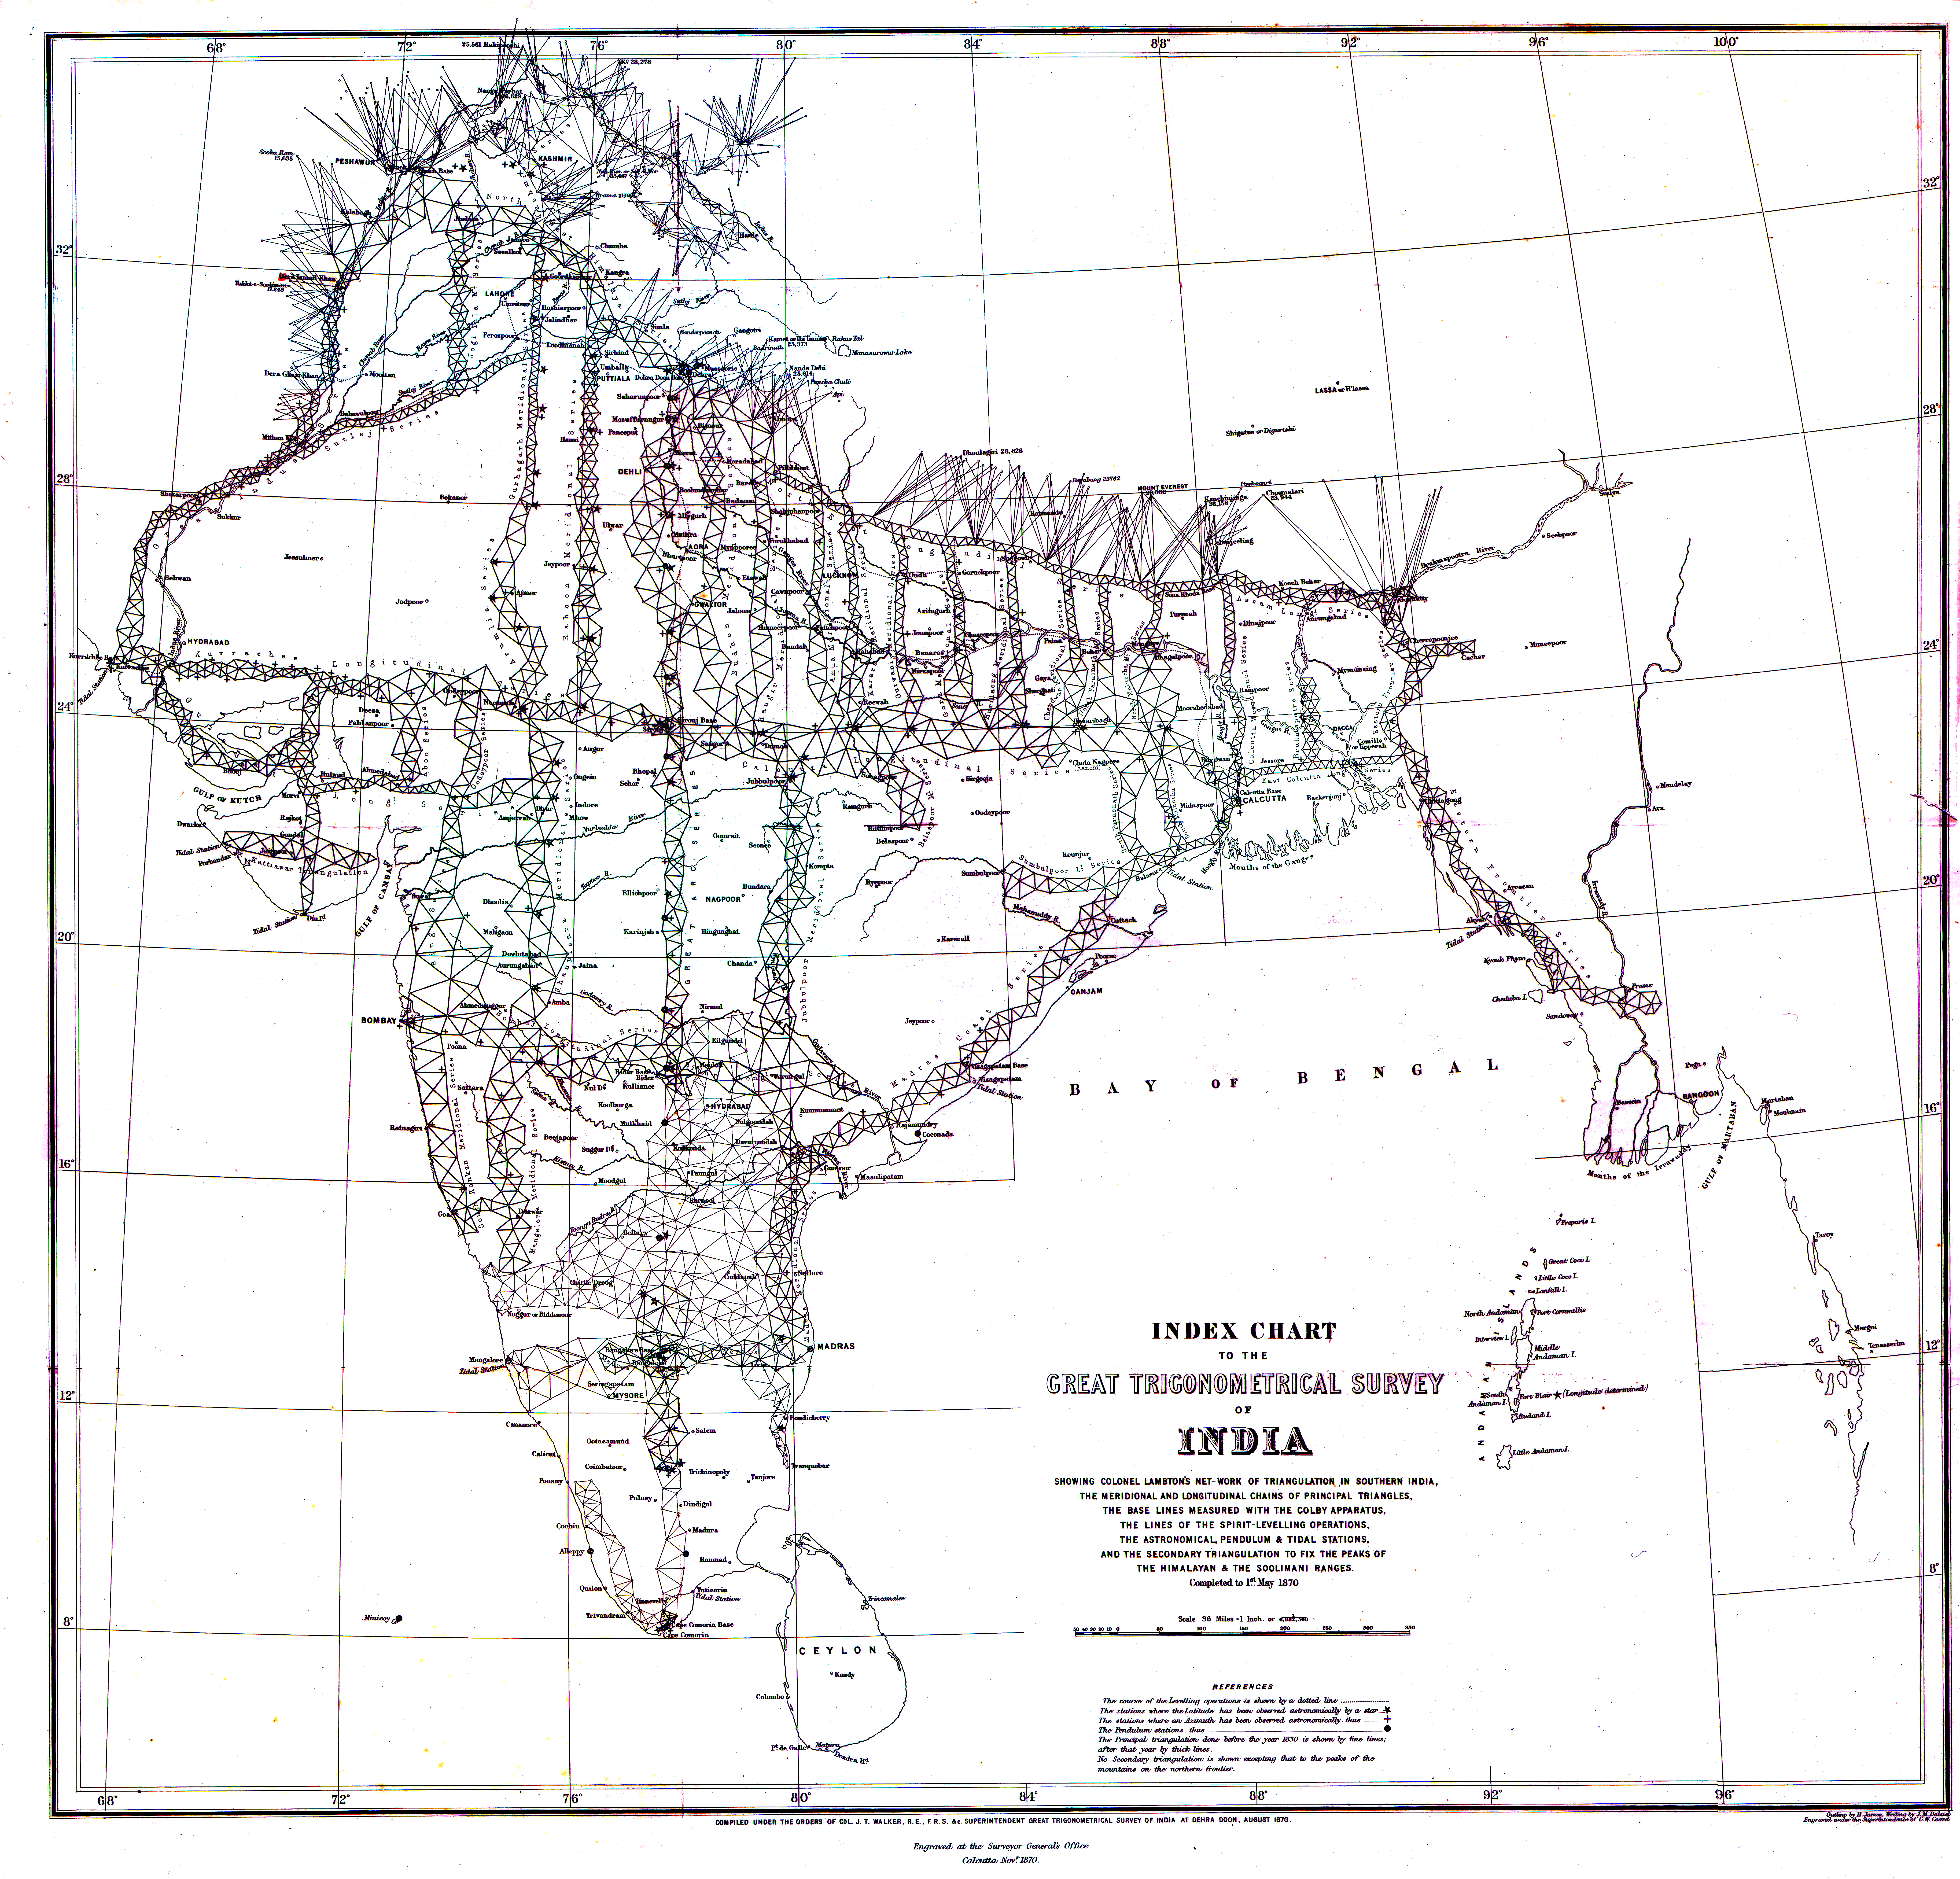 Trig Chart Degrees: 1870 Index Chart to GTS India-1.jpg - Wikimedia Commons,Chart